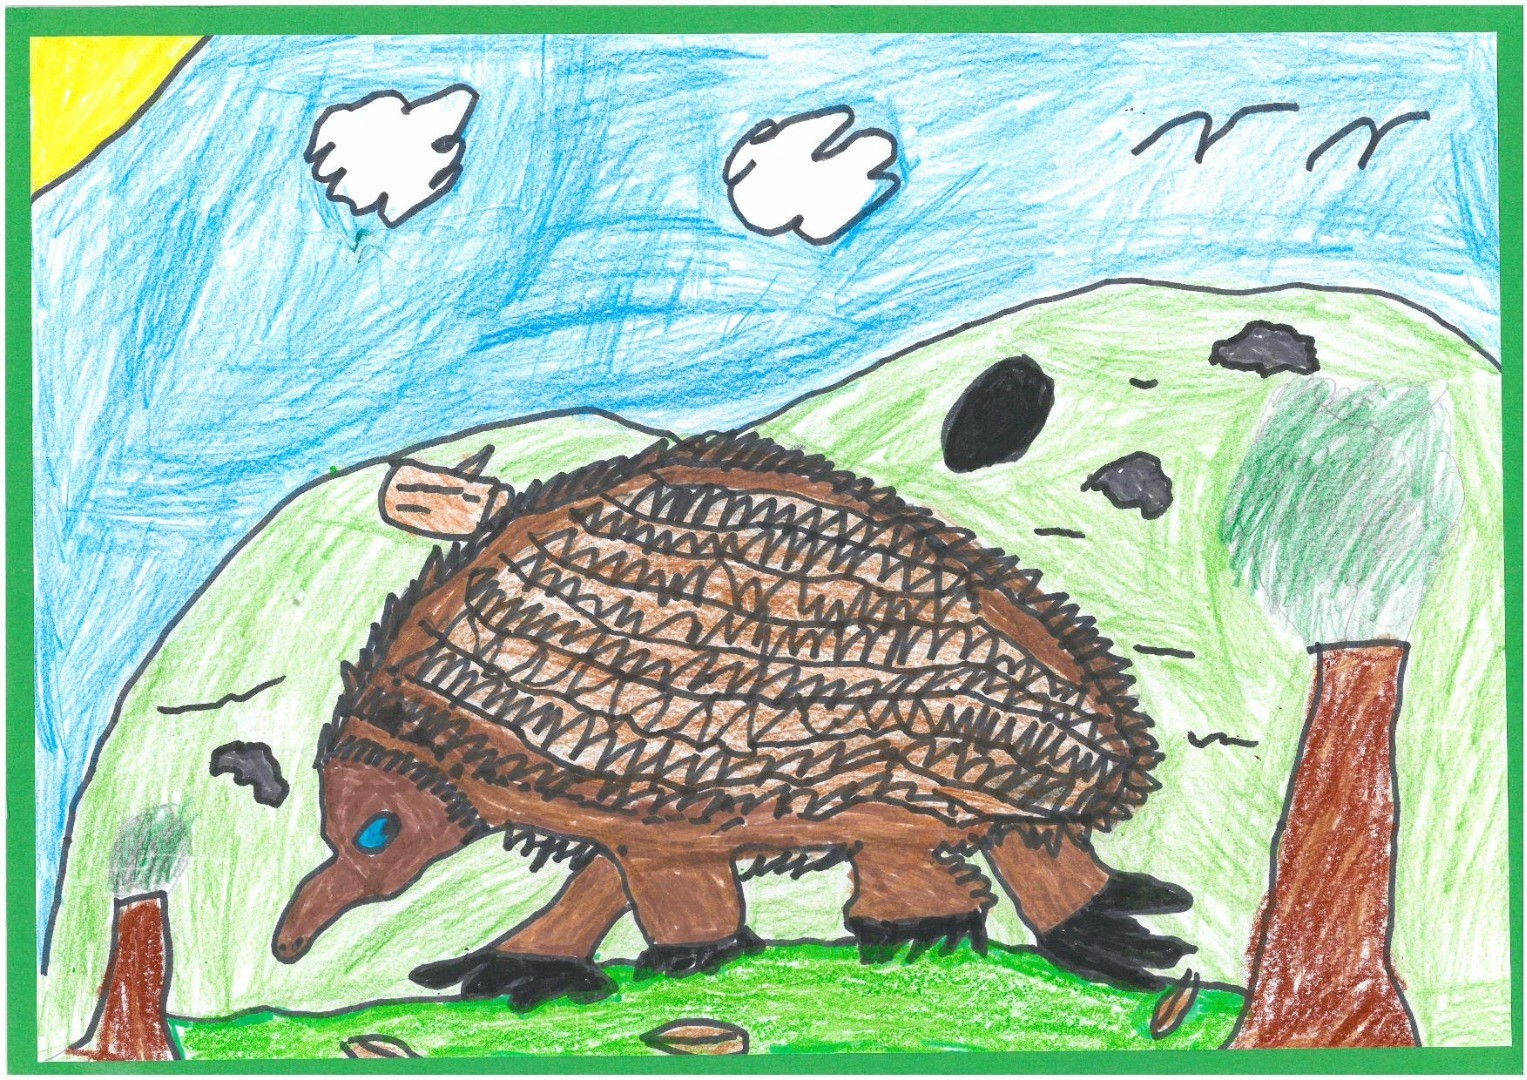 2017 Celebrate Australia Primary School Art Competition Highly Commended Section Two: Saving Echidnas by Samaul Brown